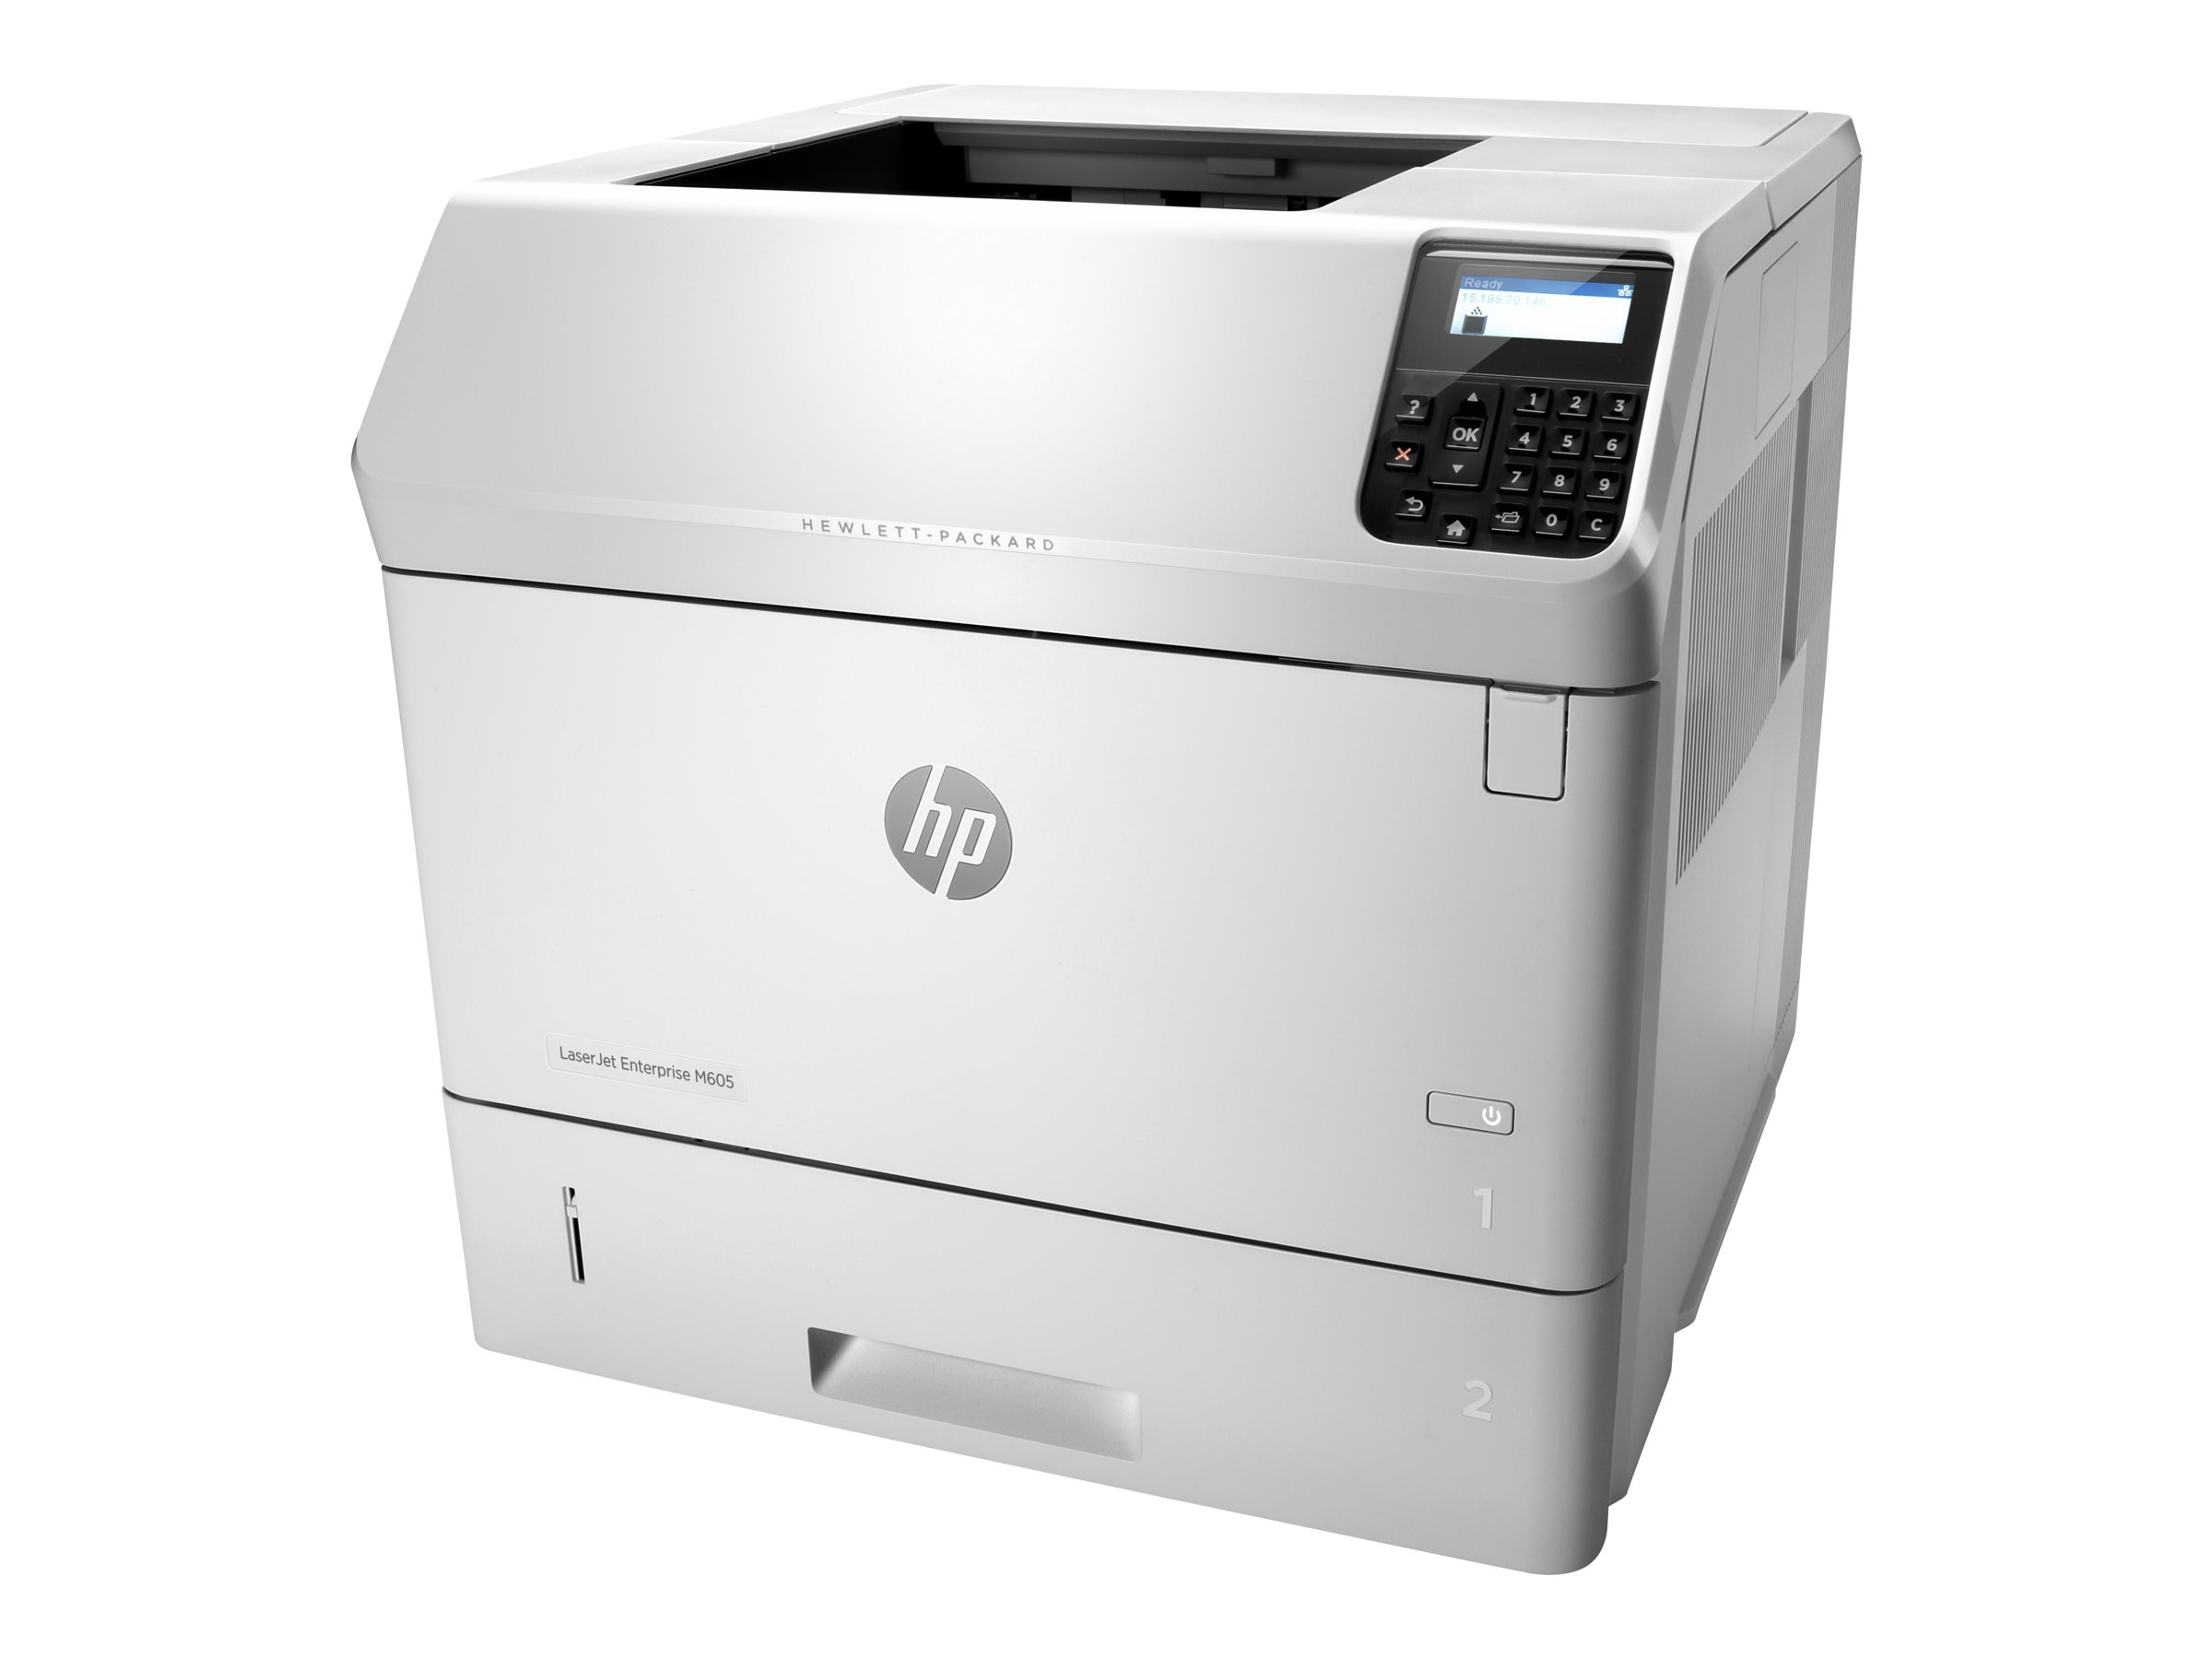 HP LaserJet Enterprise M605dn Printer, E6B70A#BGJ, 18894233, Printers - Laser & LED (monochrome)